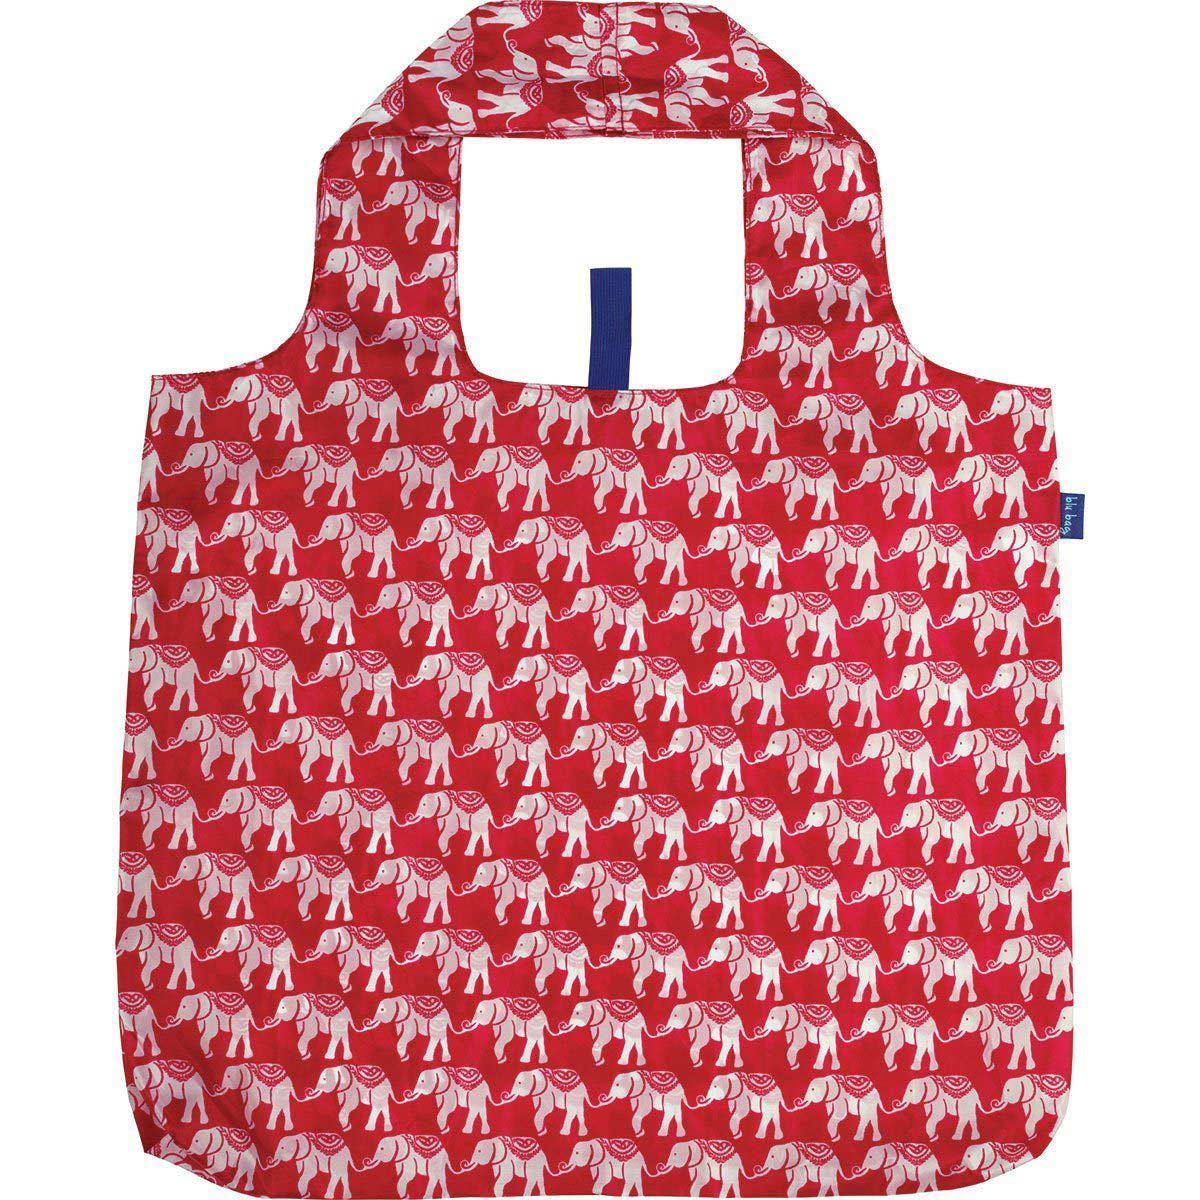 blu bag reusable shopping bag with red background and white elephant print